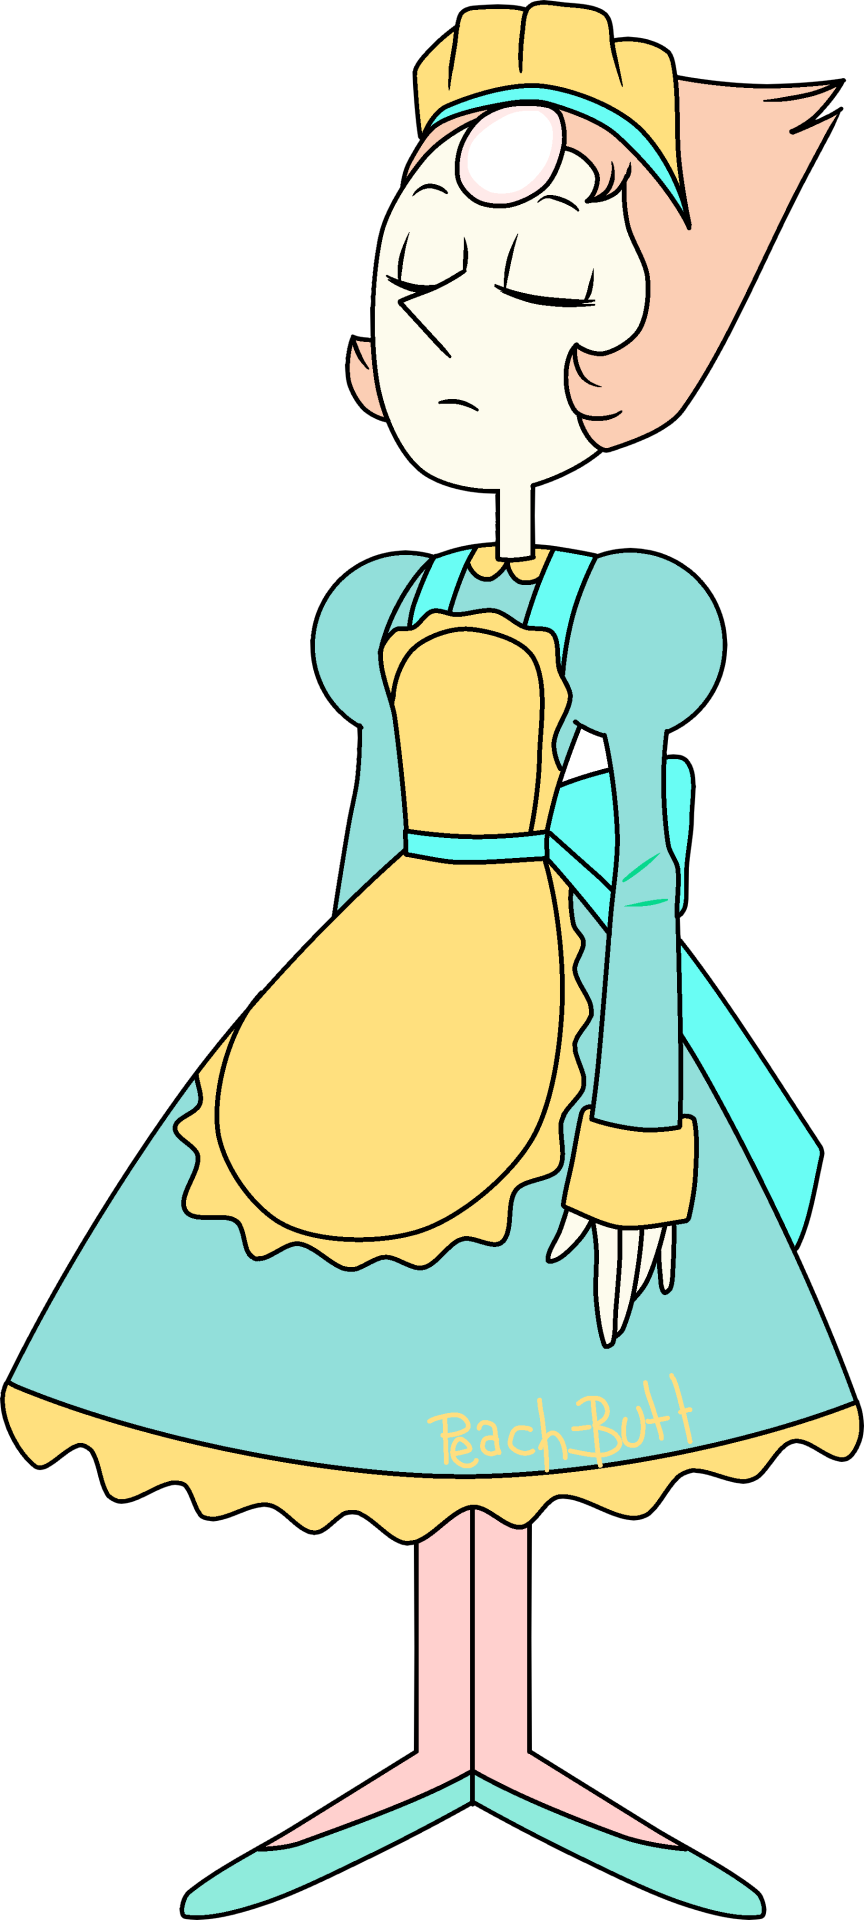 Maid clipart maid outfit. Pearl steven universe know